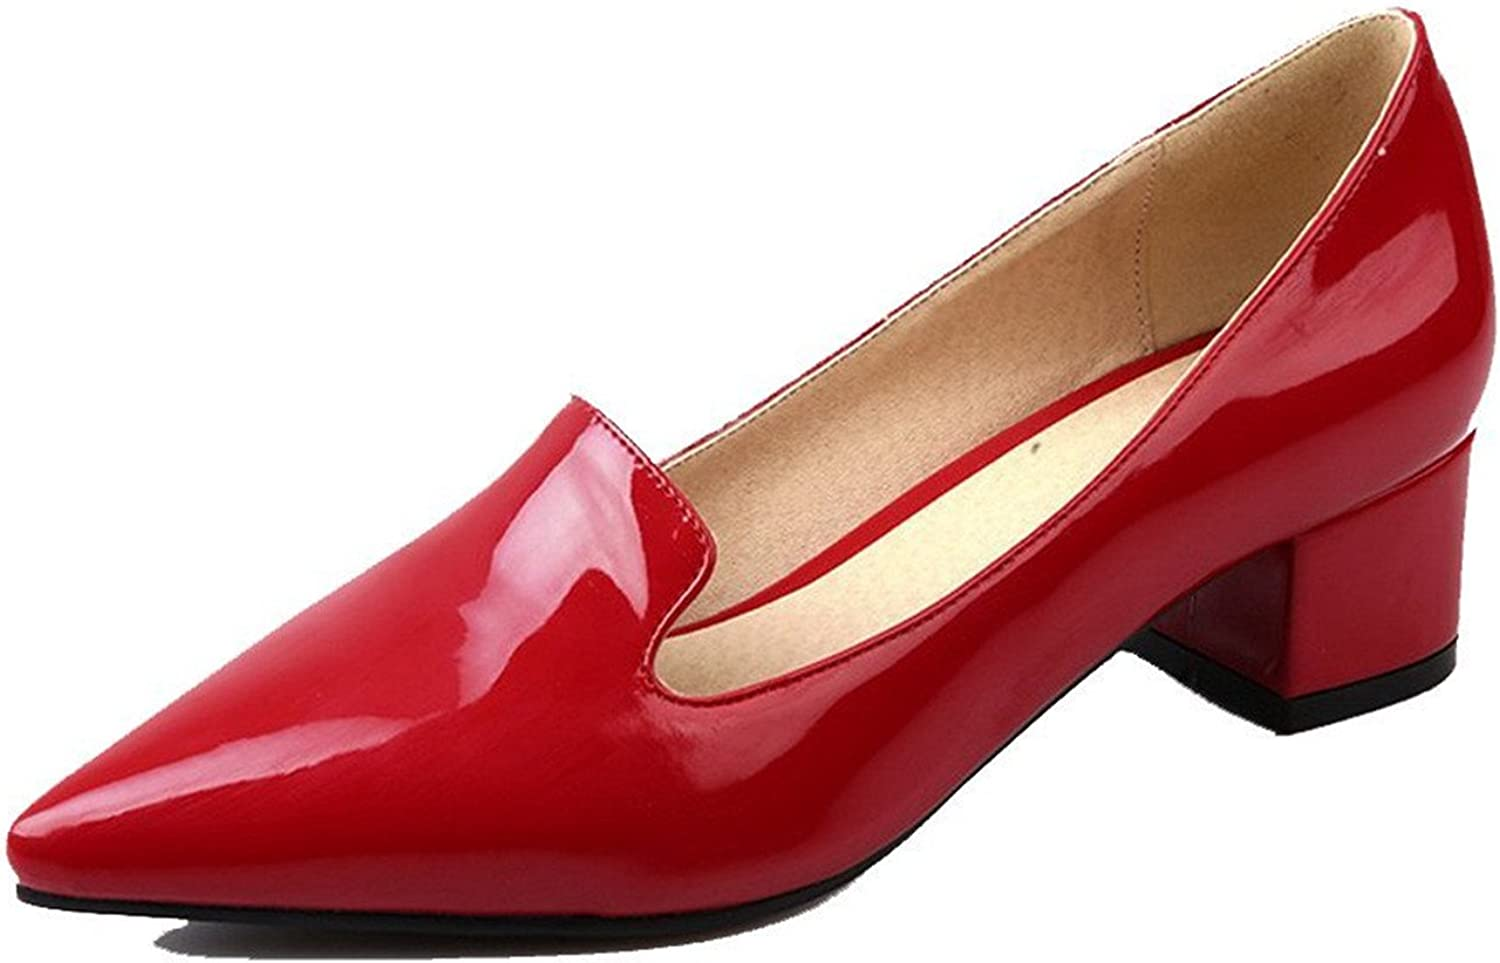 Tirahse Comfortable Women's Patent Leather Pointed Closed Toe Kitten Heels Pull On Solid Pumps-shoes